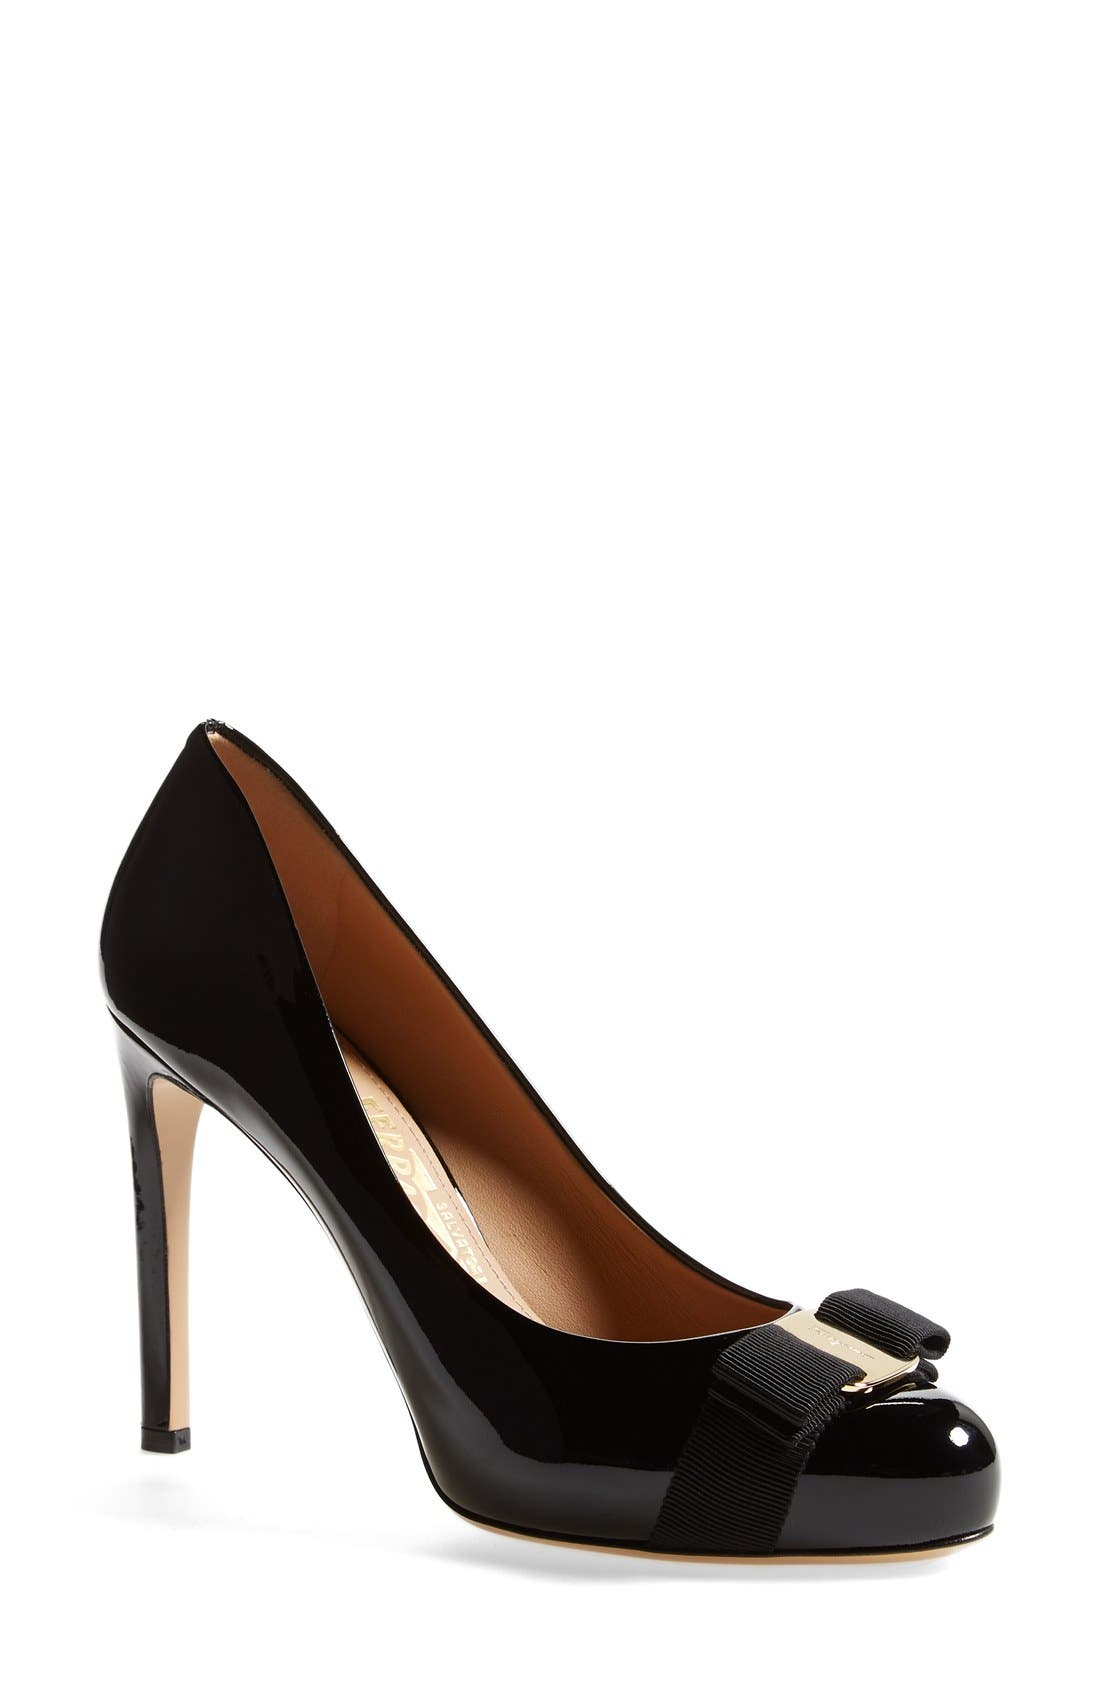 Salvatore Ferragamo Rounded Toe Bow Pump (Women)